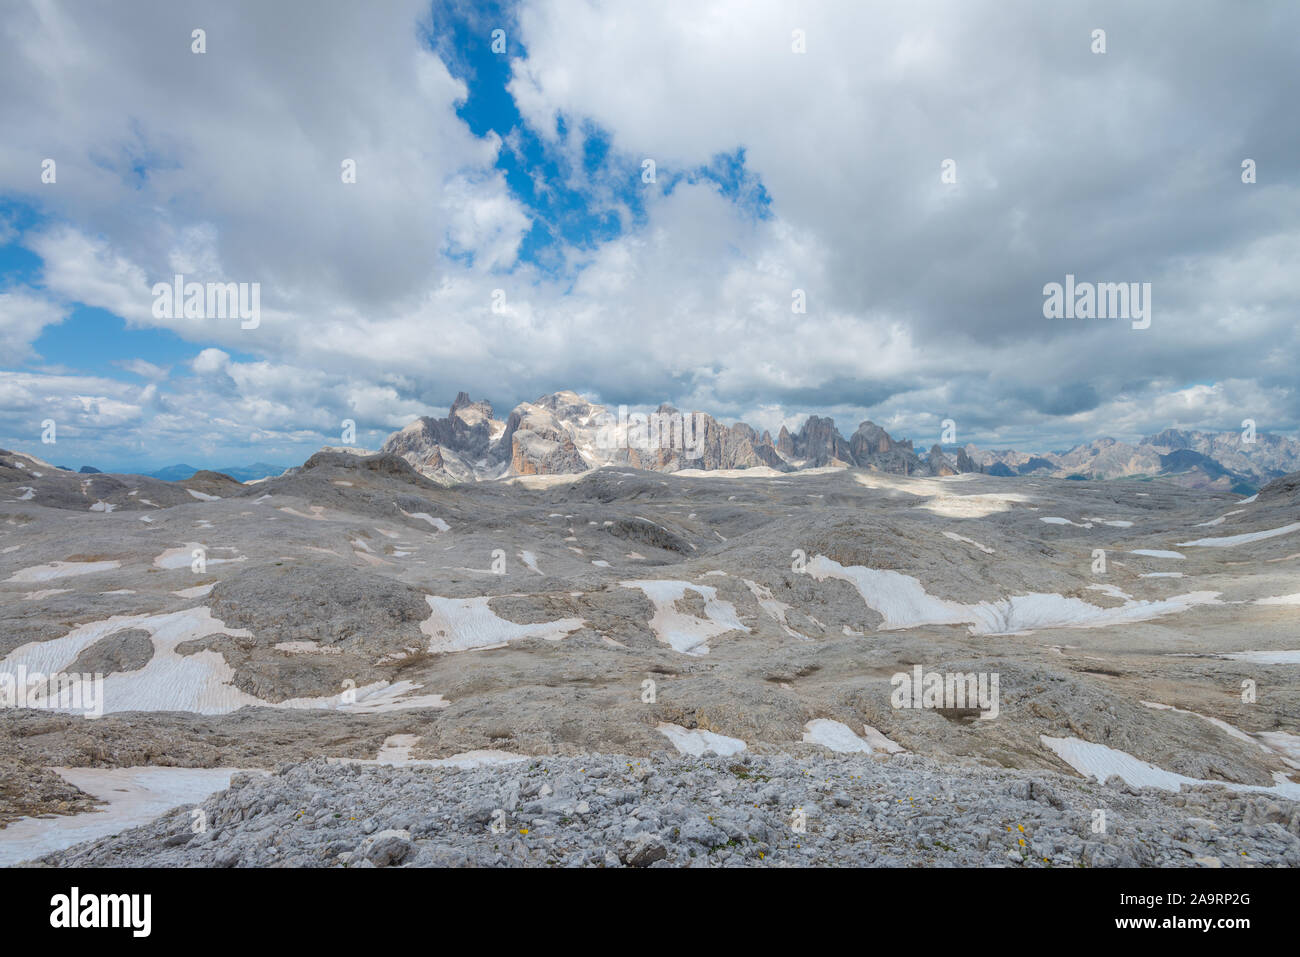 Open views of the Rosetta plateau in the Dolomites. Rocky, deserted moonscape in the mountains. Barren mountainscape, alpine scenary. Stock Photo